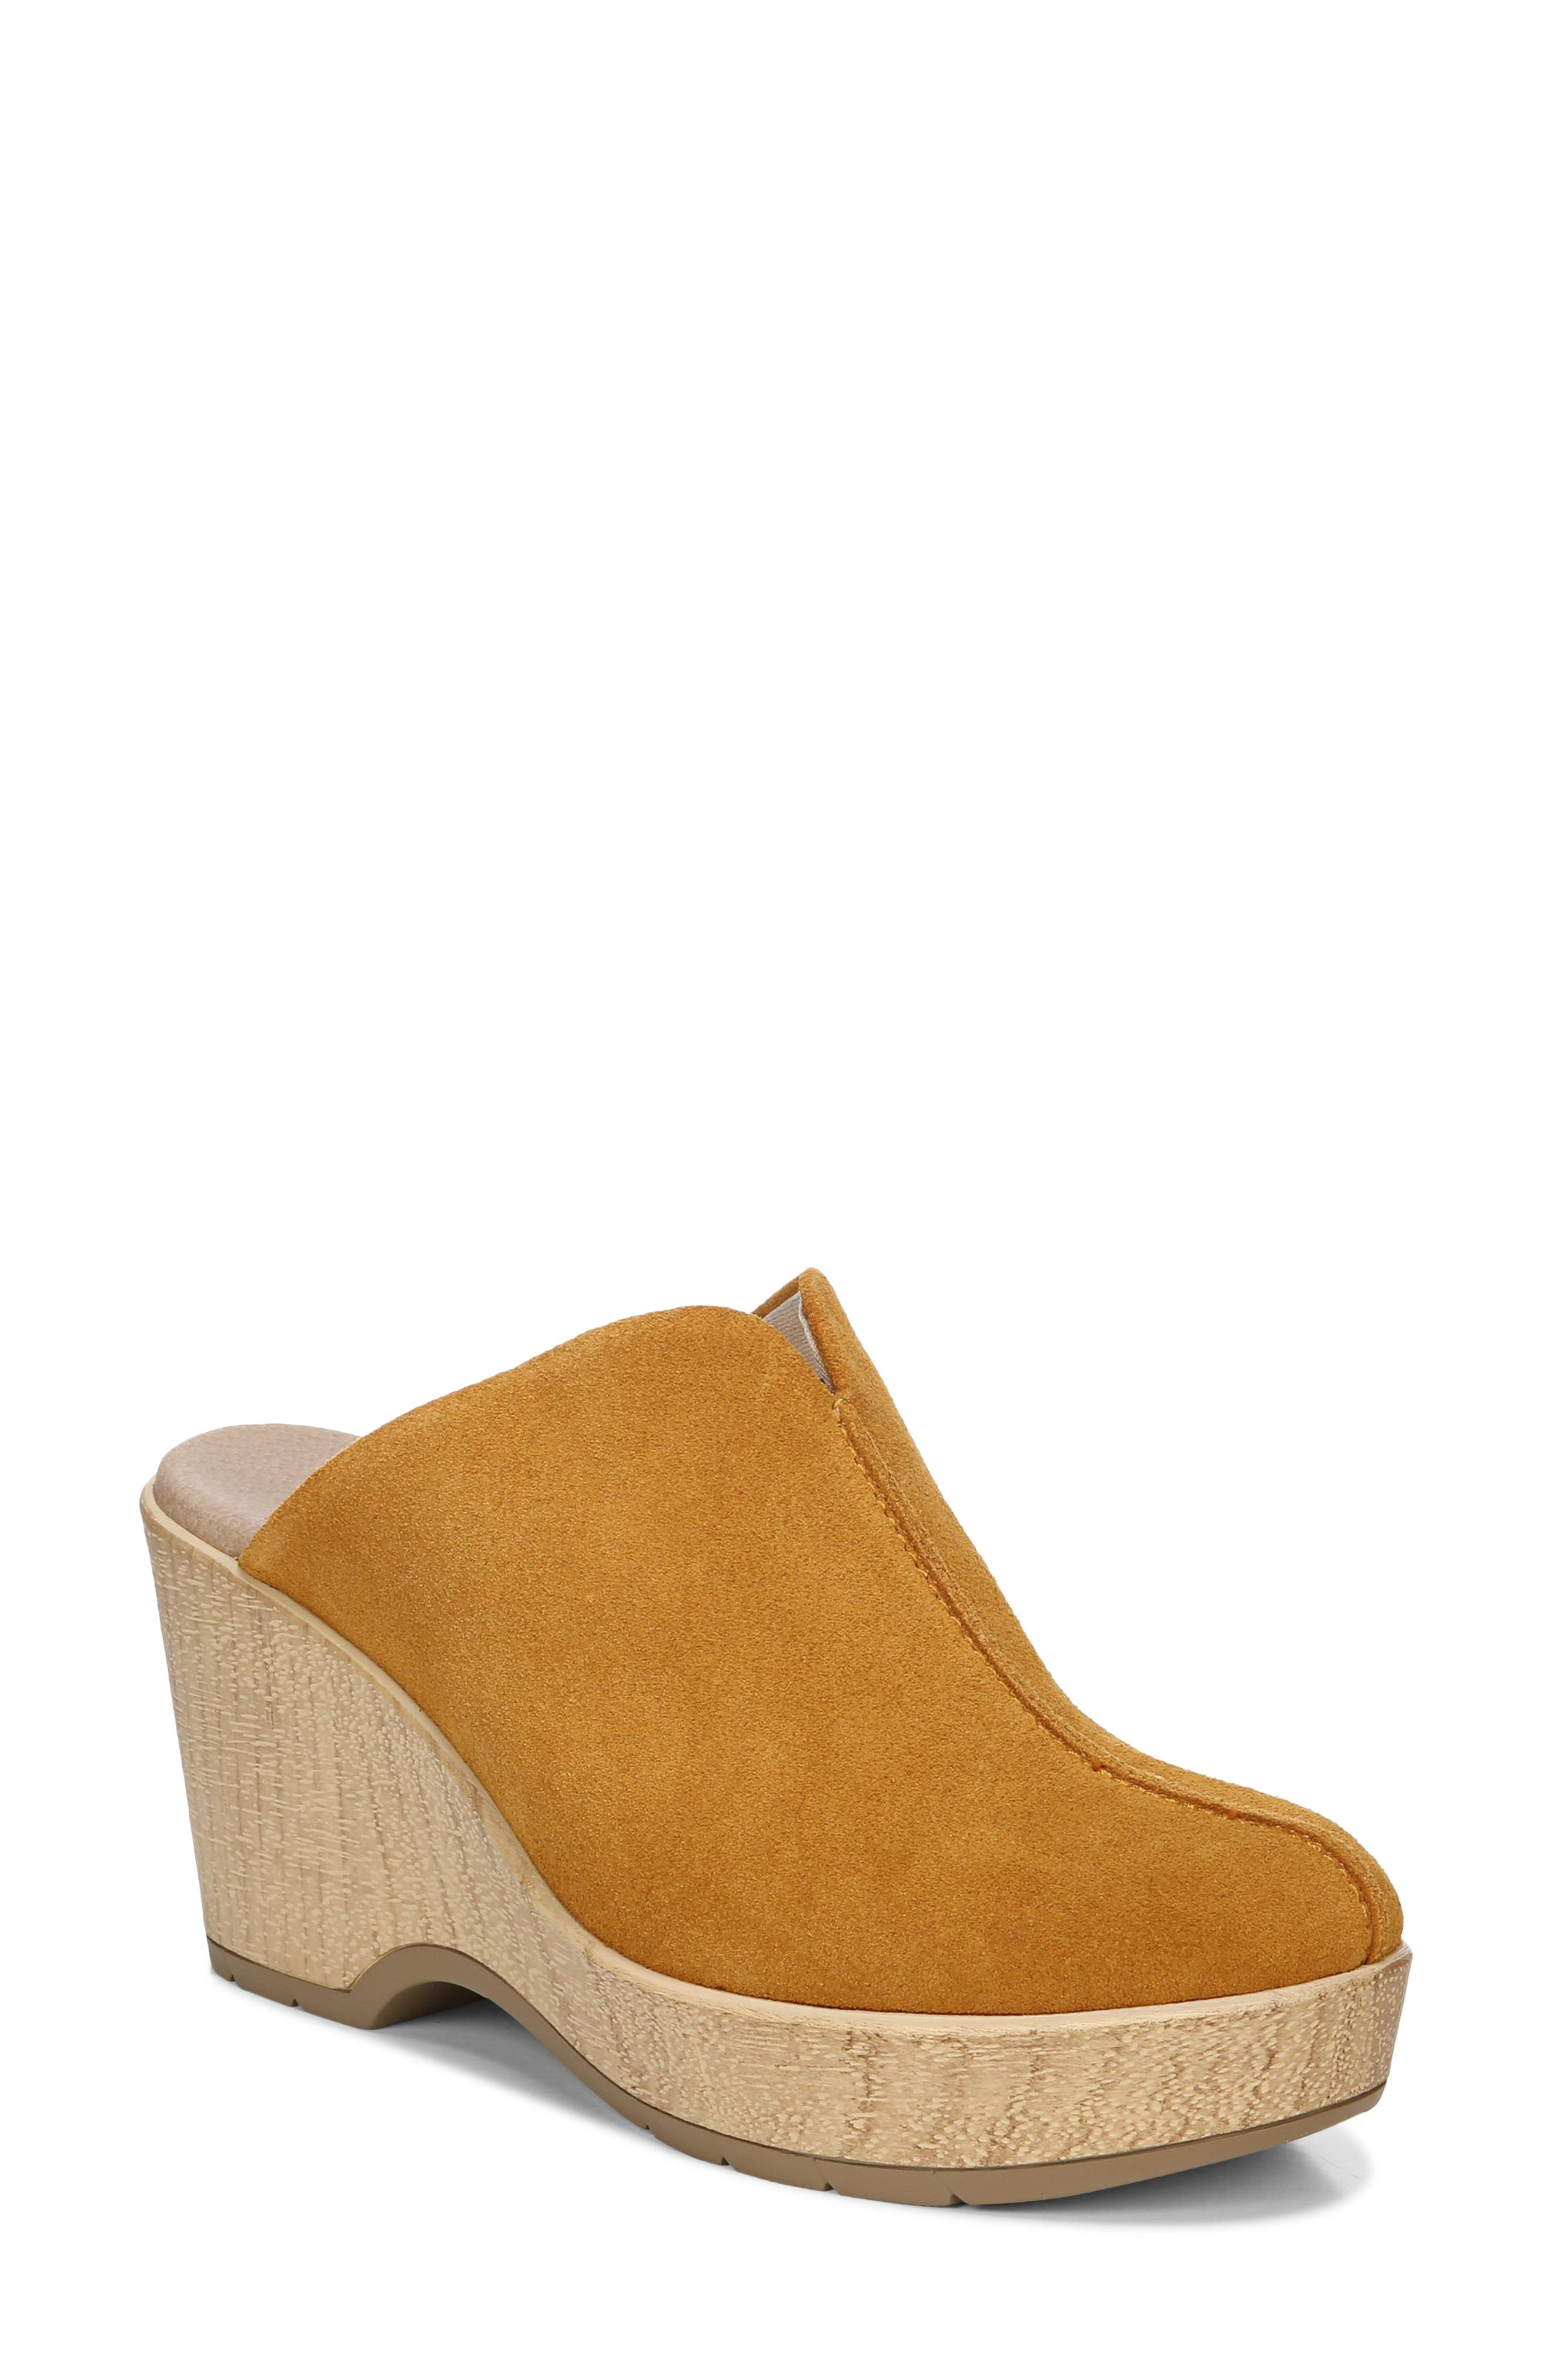 Dr. Scholl's Poppy Clog In Golden Yellow Leather